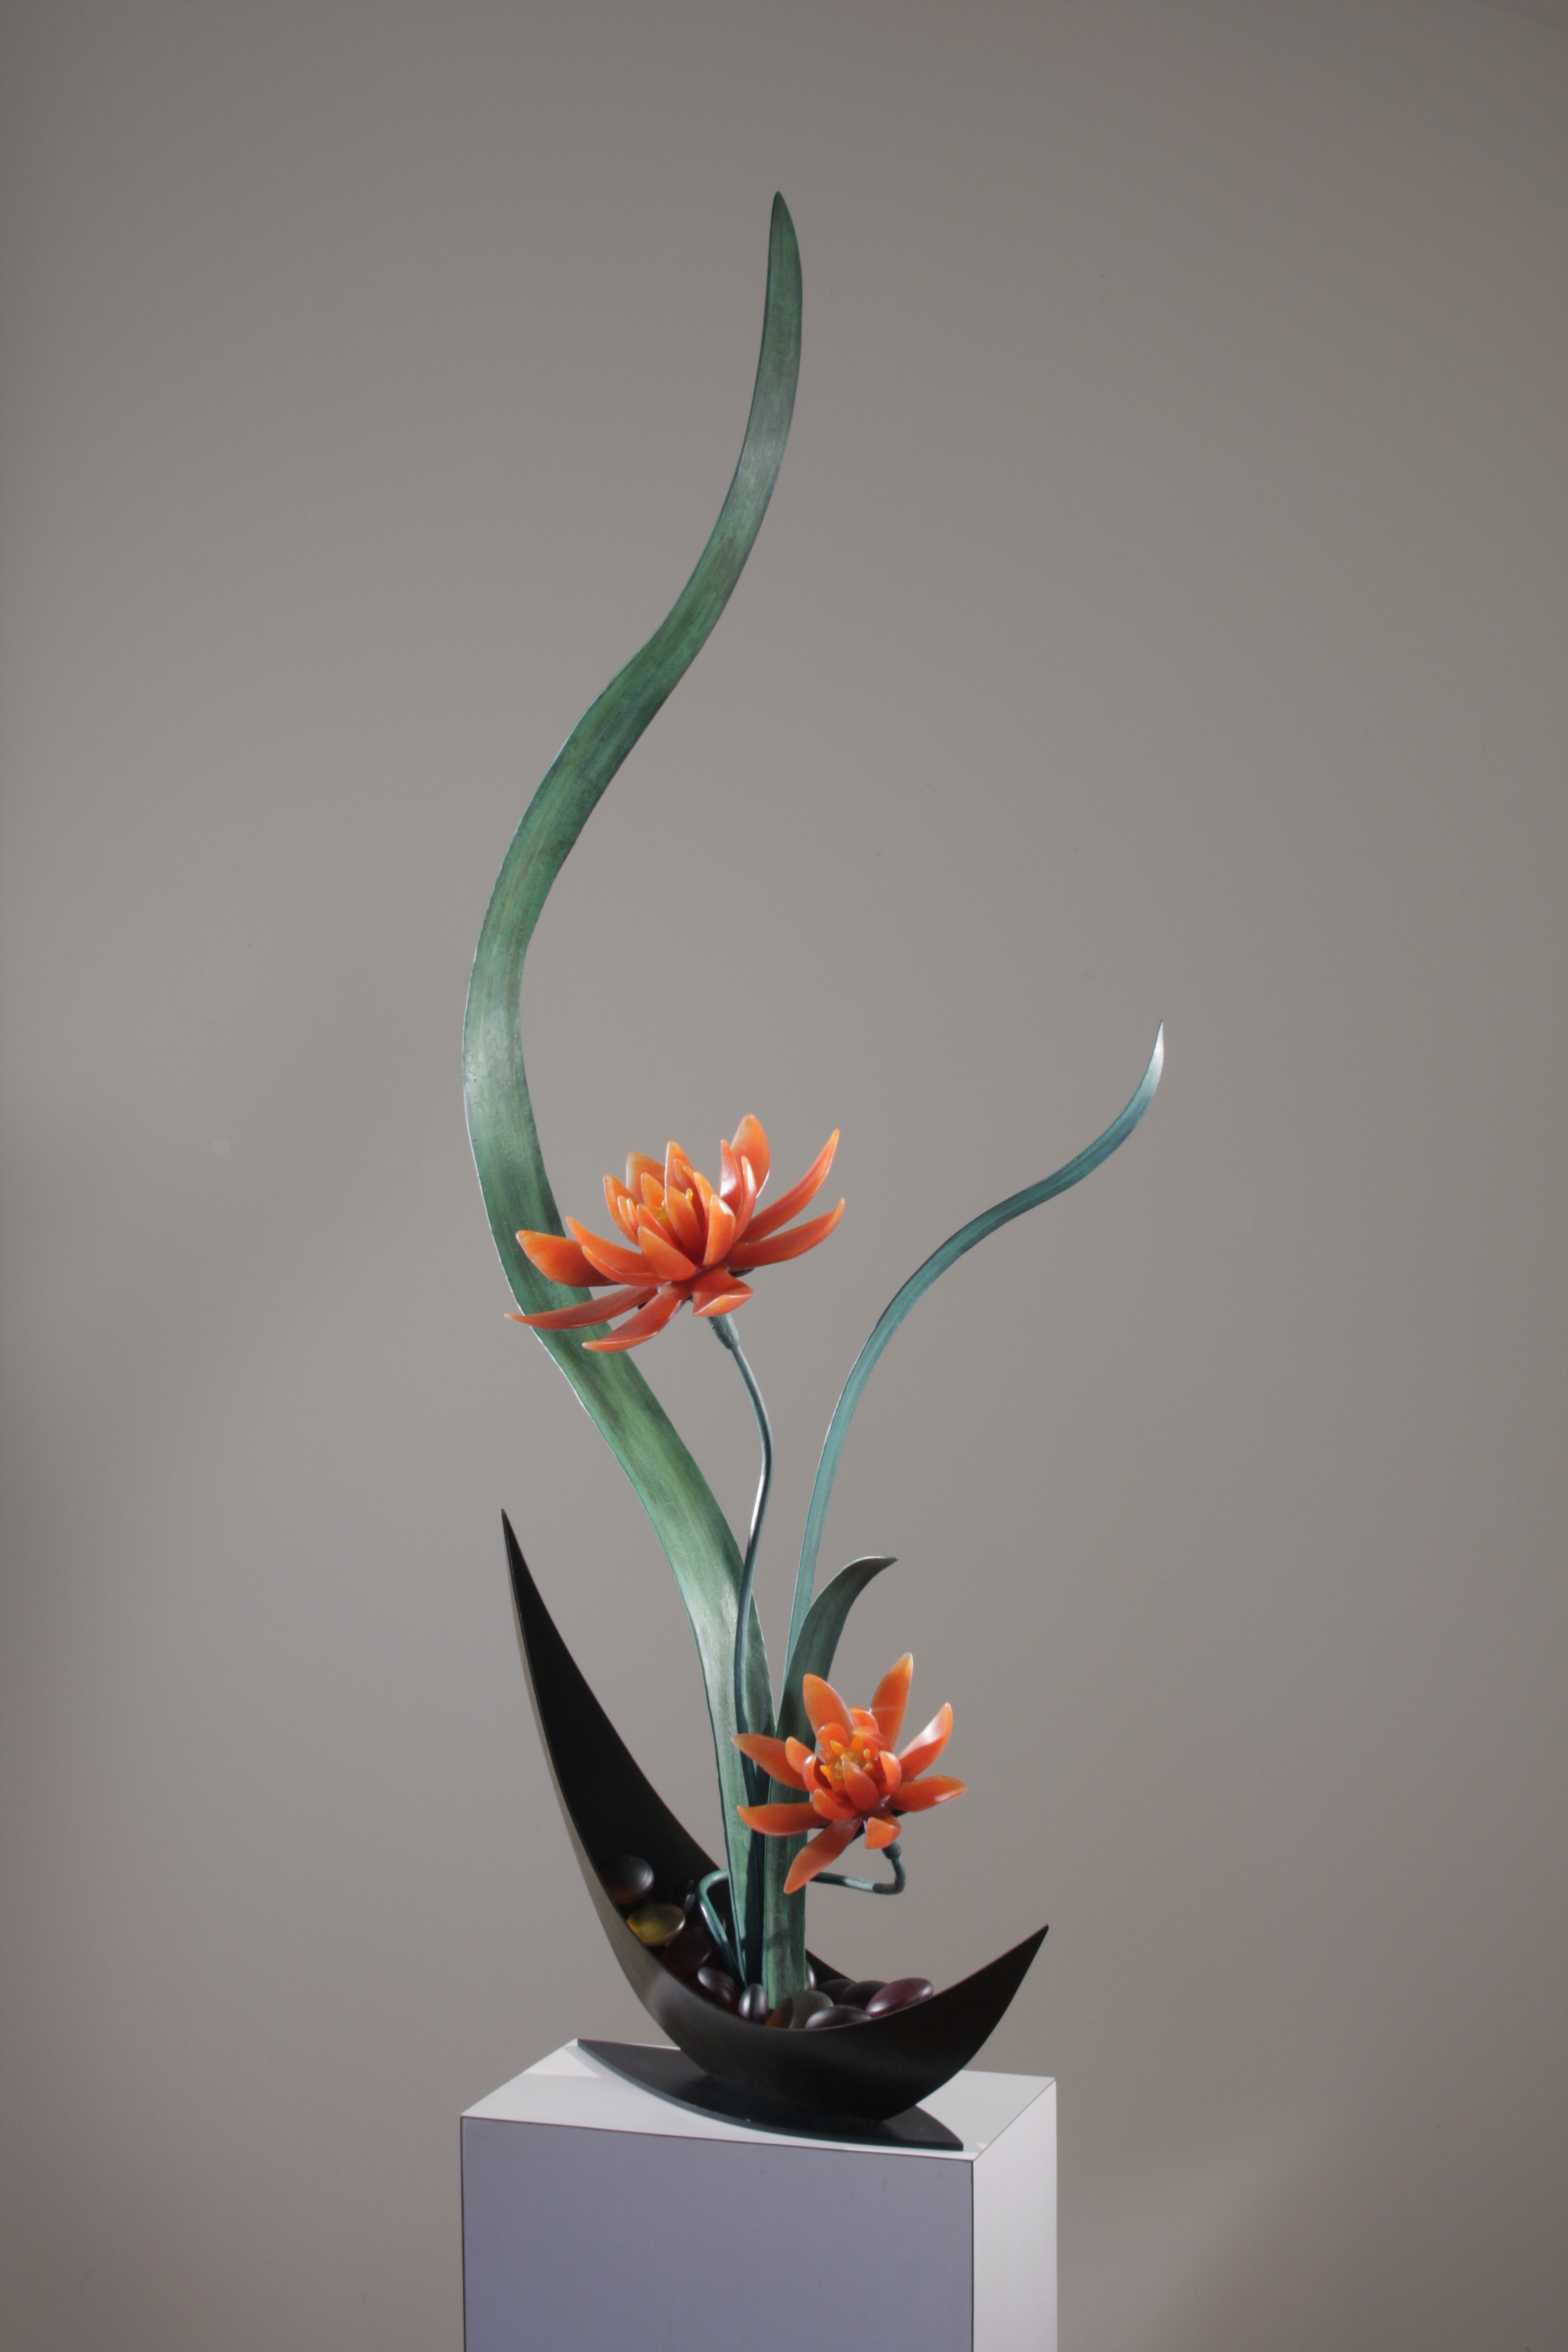 Angled view of sculptural flower arrangement in cast glass with red-orange flowers, green steel leaves, vase in deep brown.